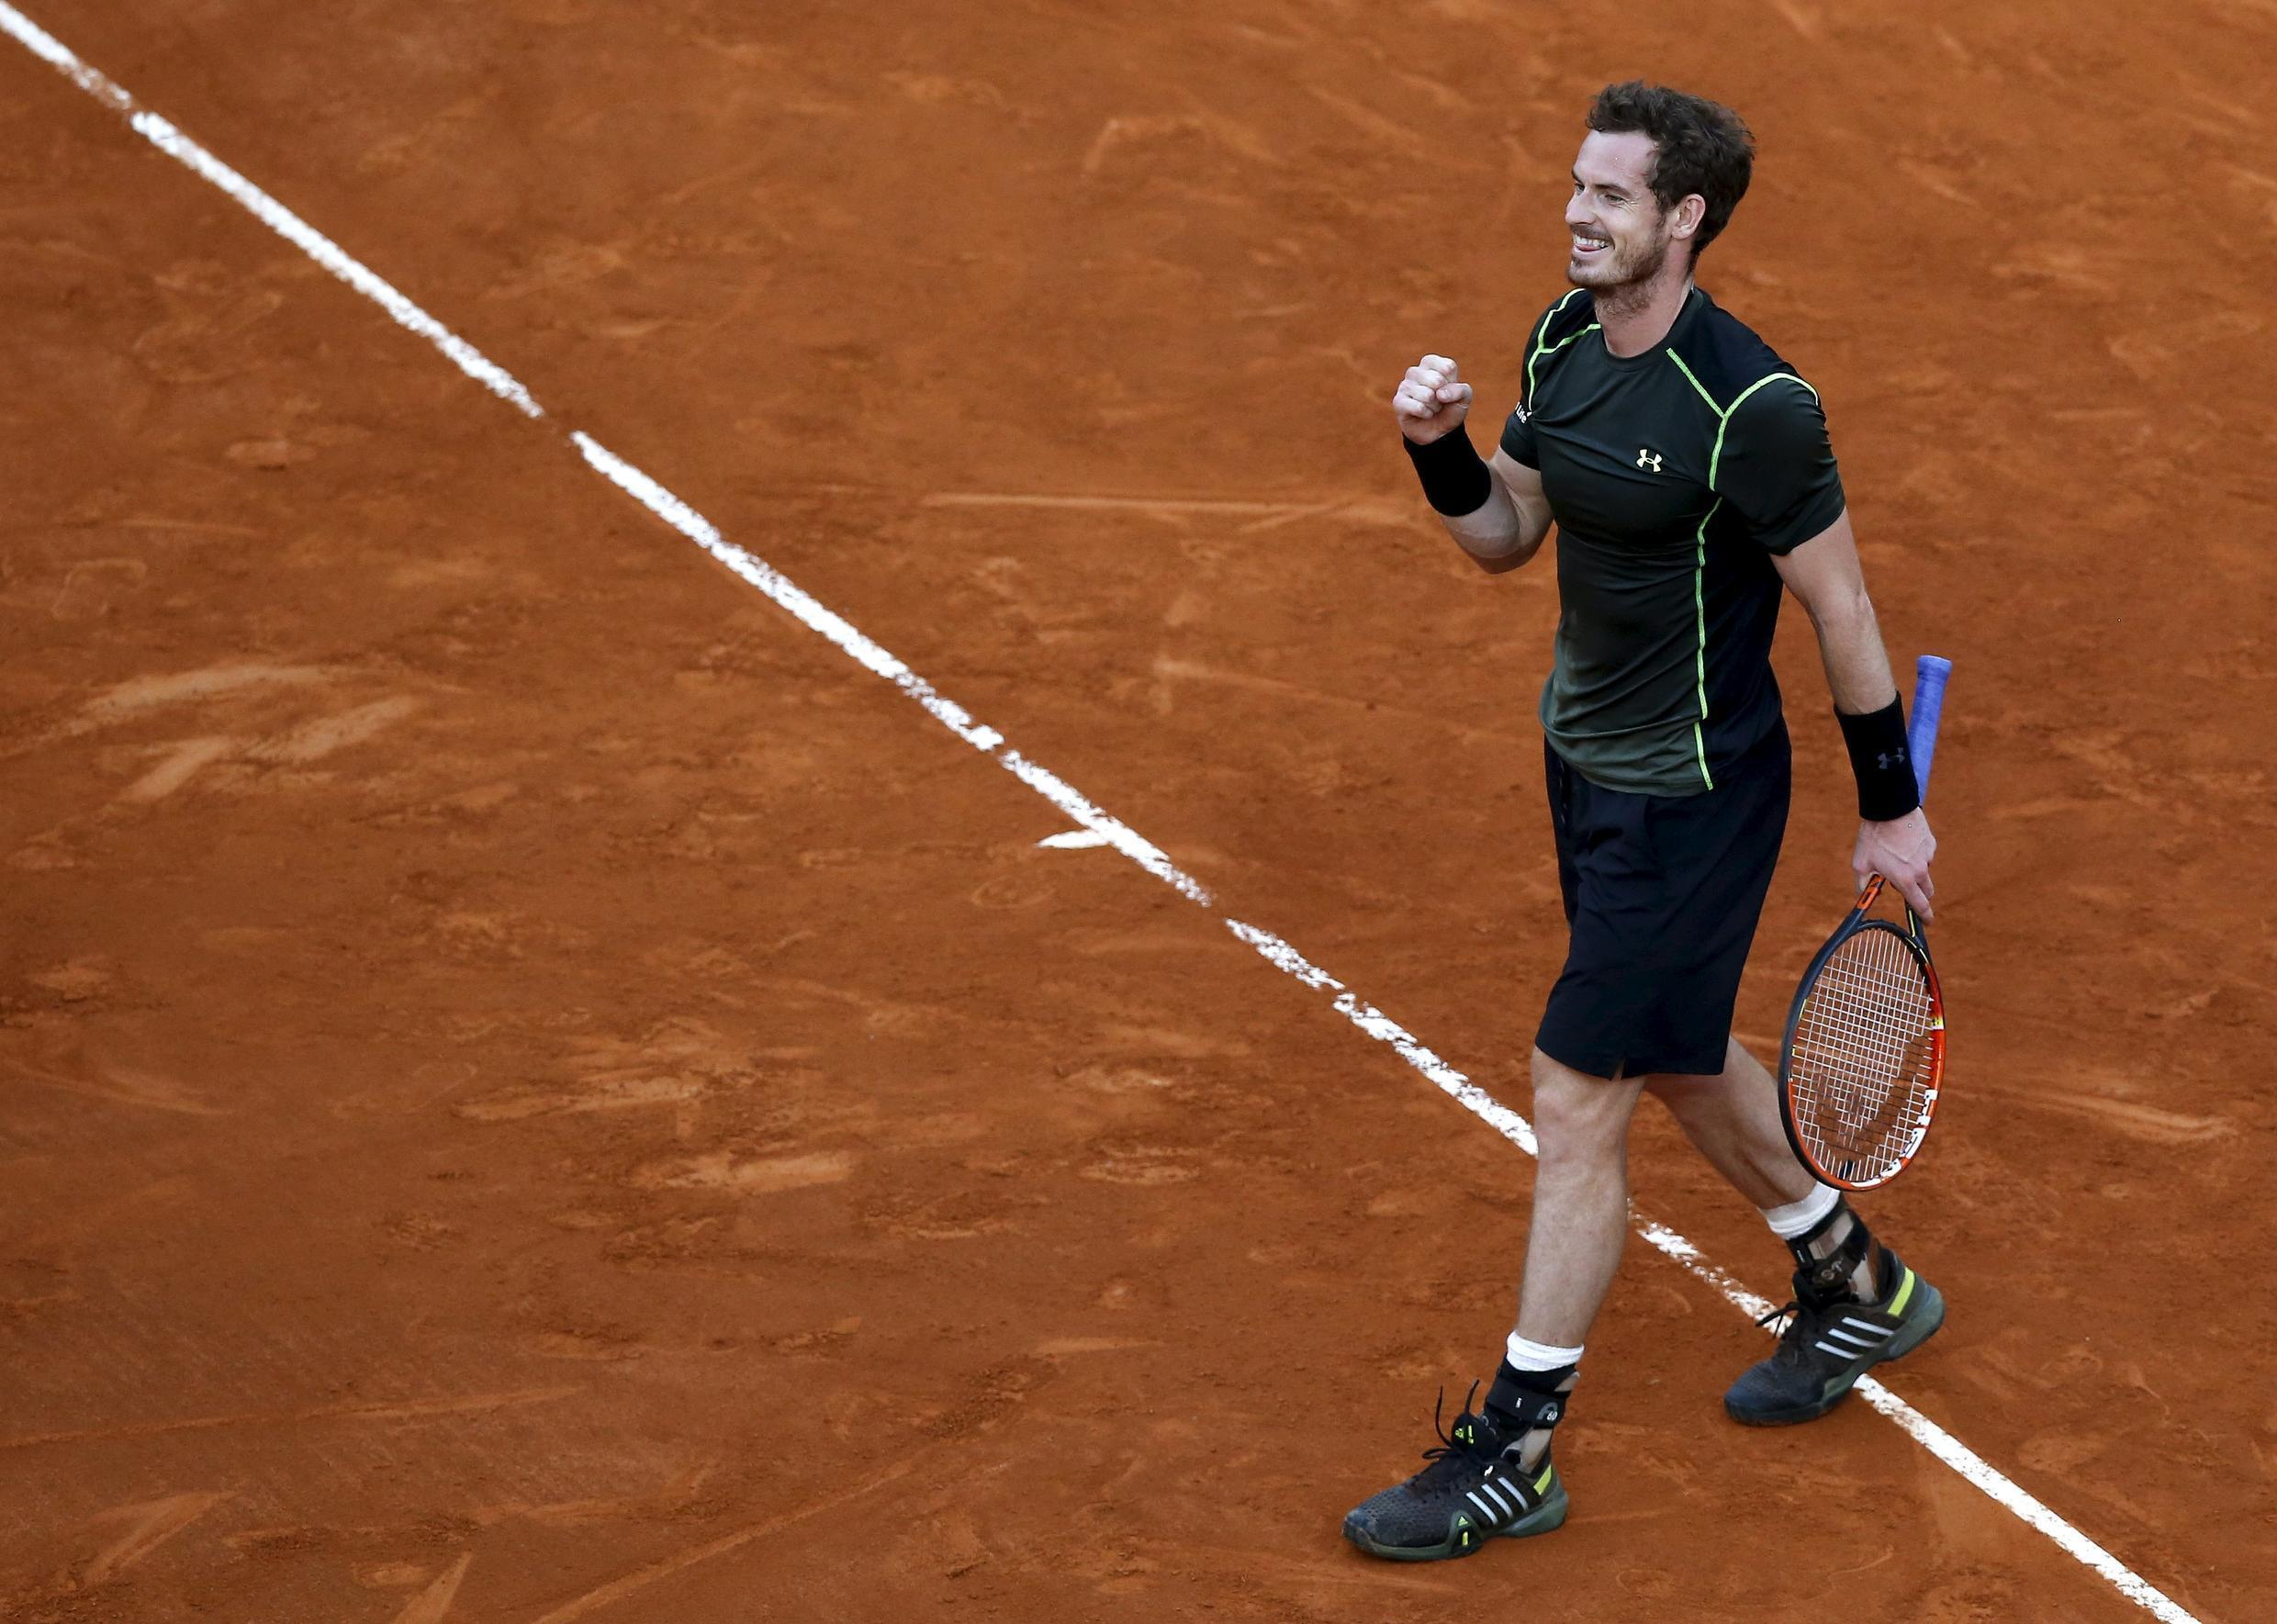 Andy Murray claimed his first Masters title on clay with his win over Rafael Nadal in Madrid